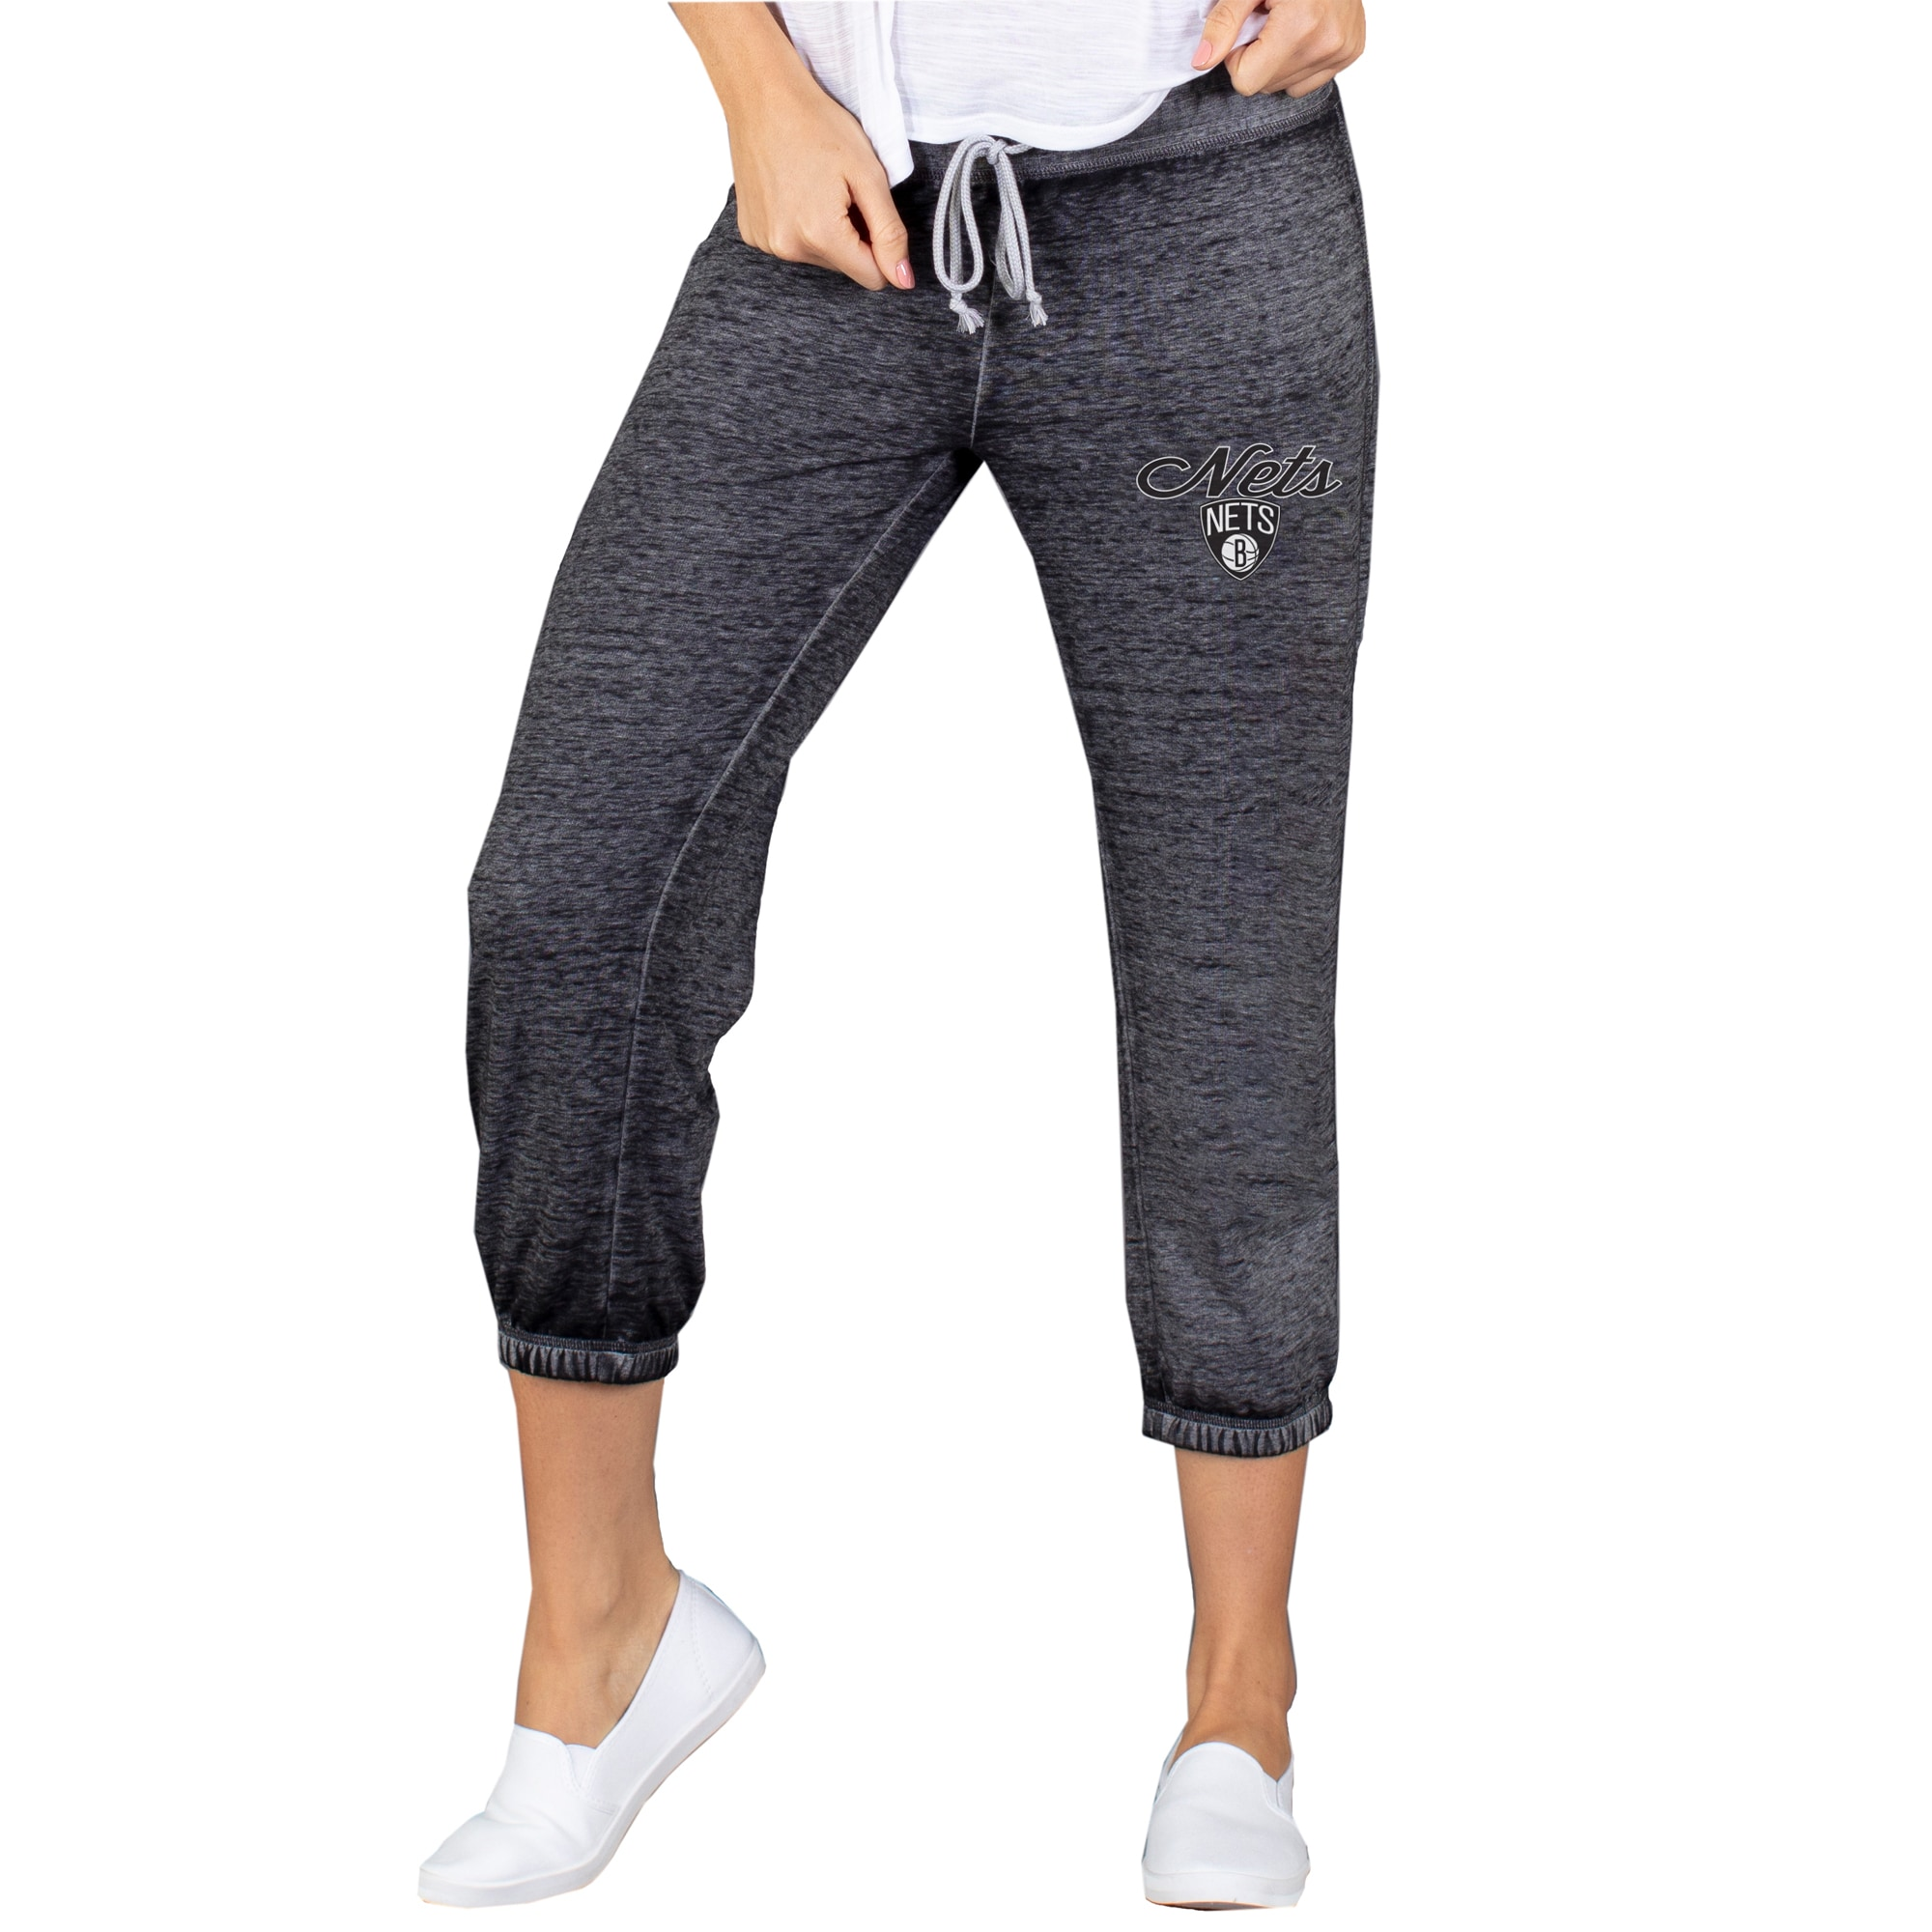 Brooklyn Nets Concepts Sport Women's Capri Knit Lounge Pants - Charcoal